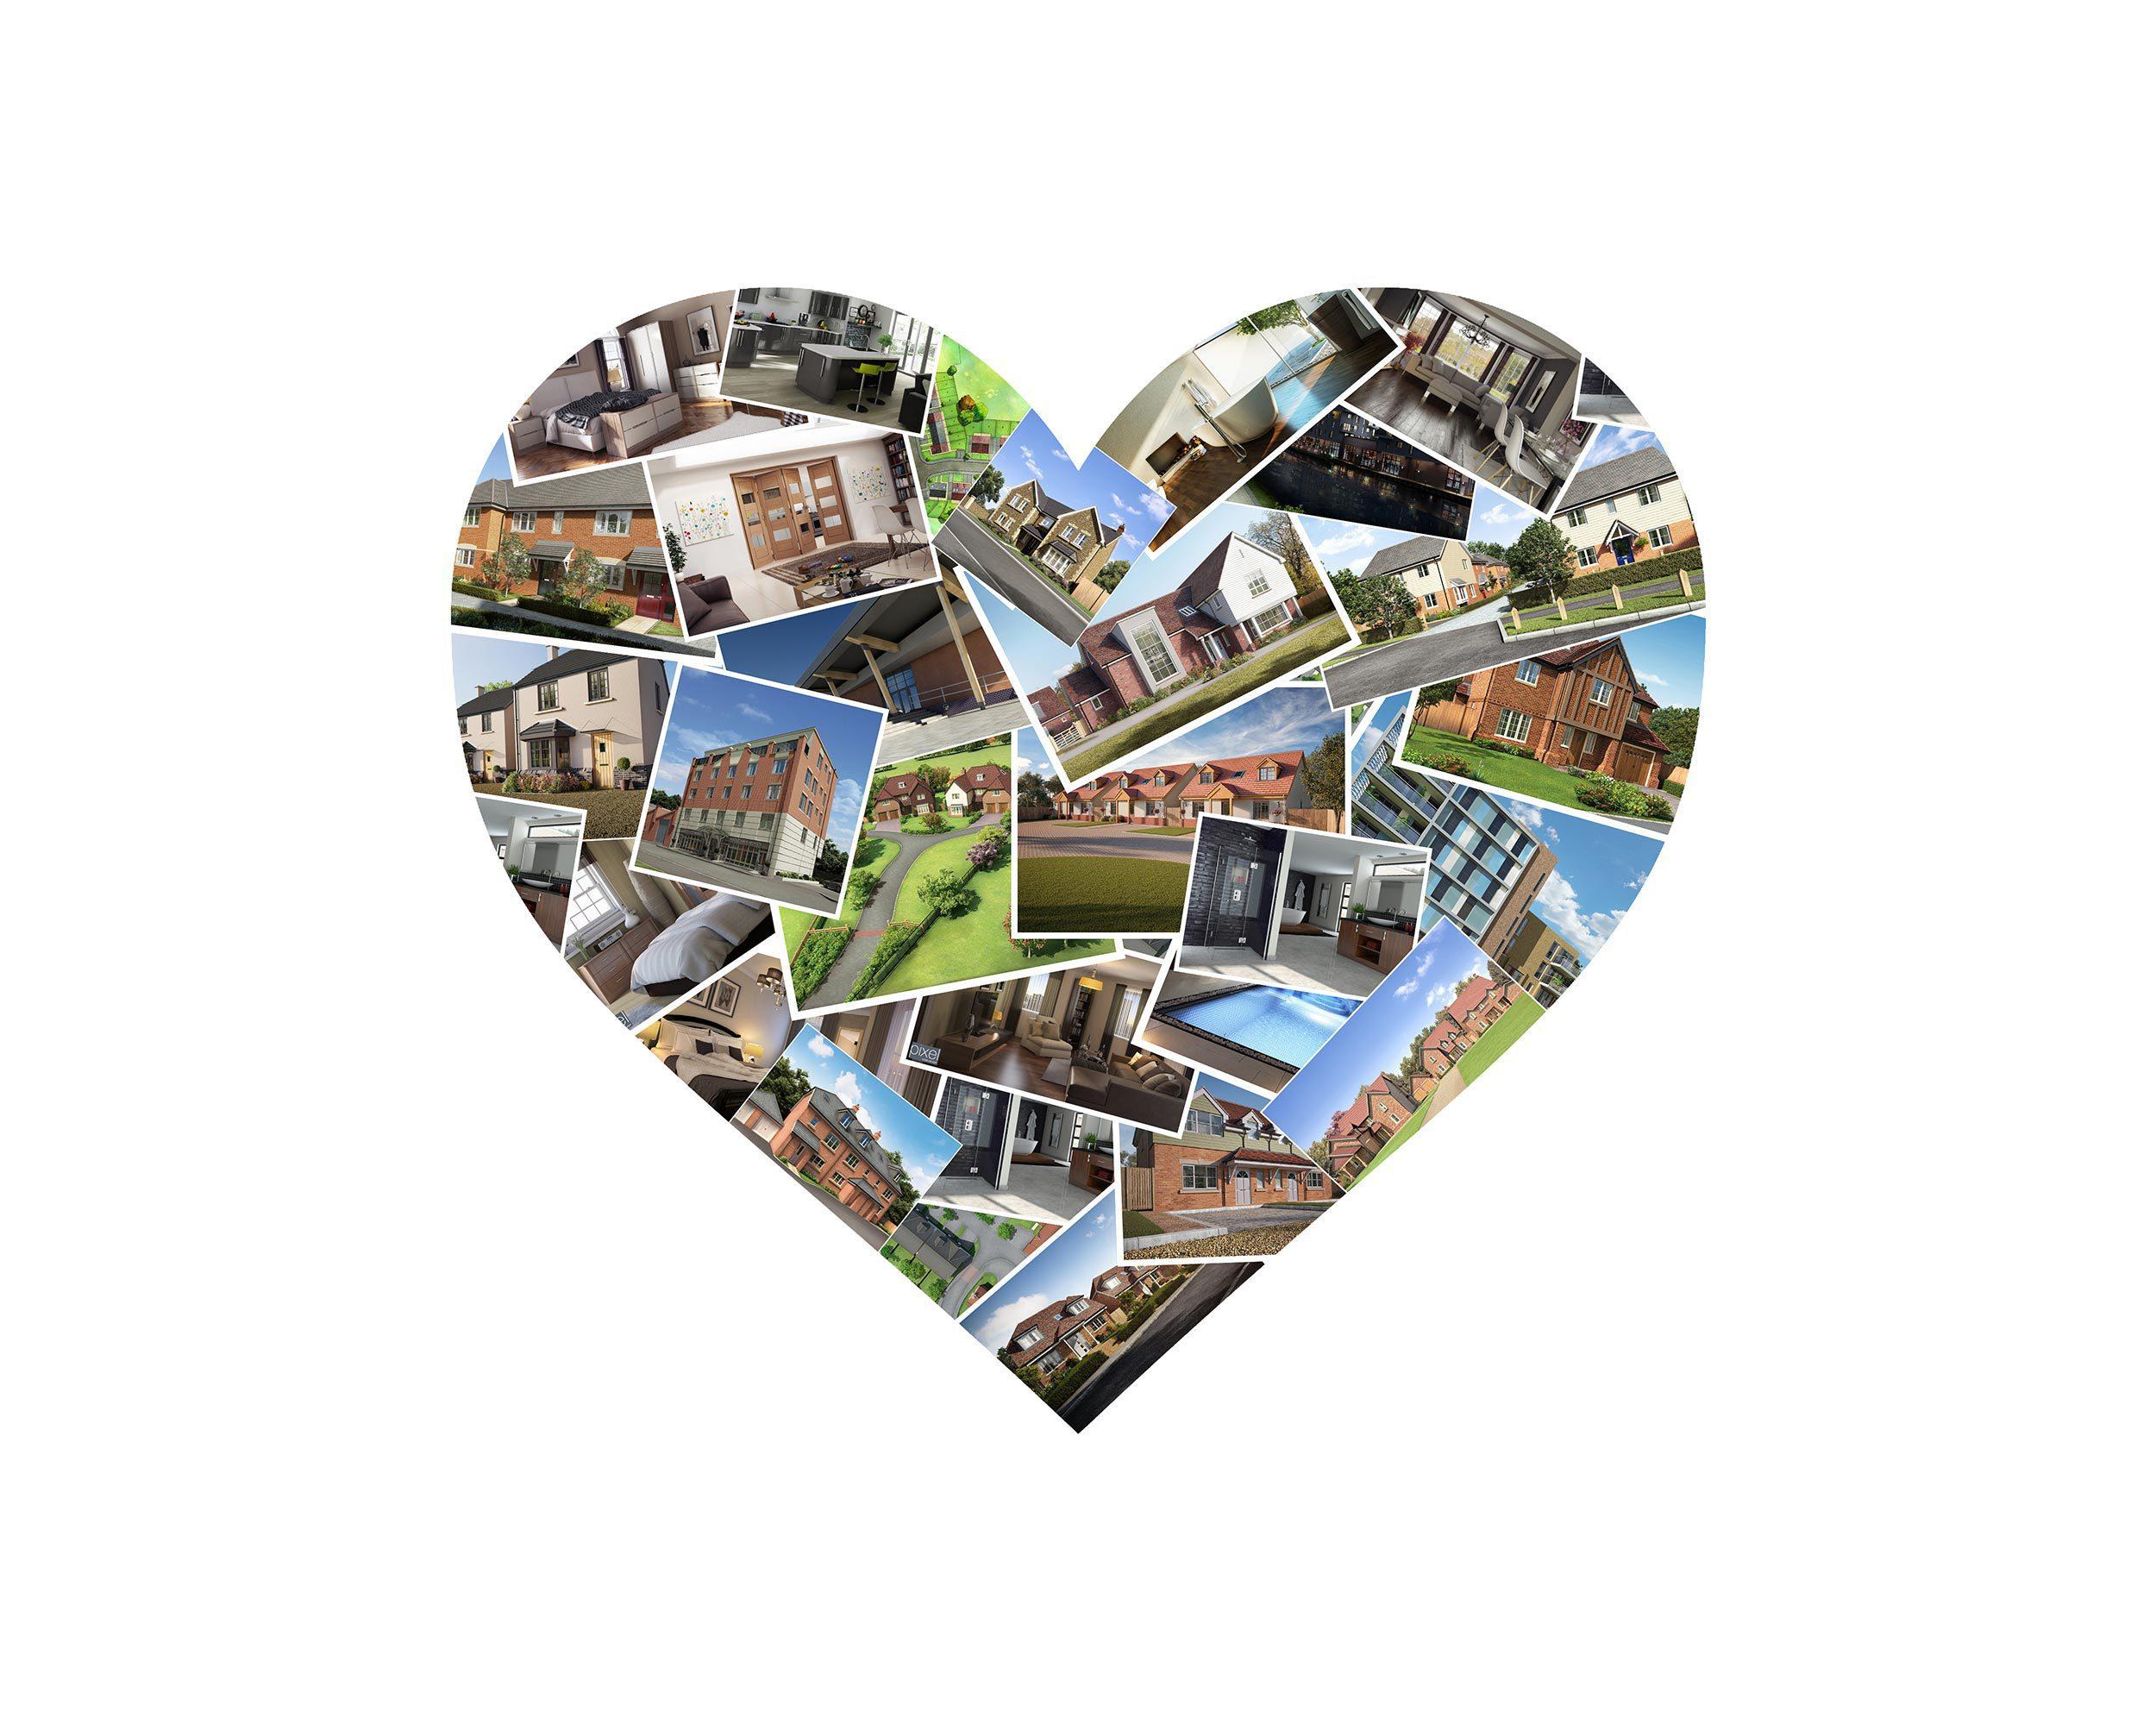 Heart Montage Image